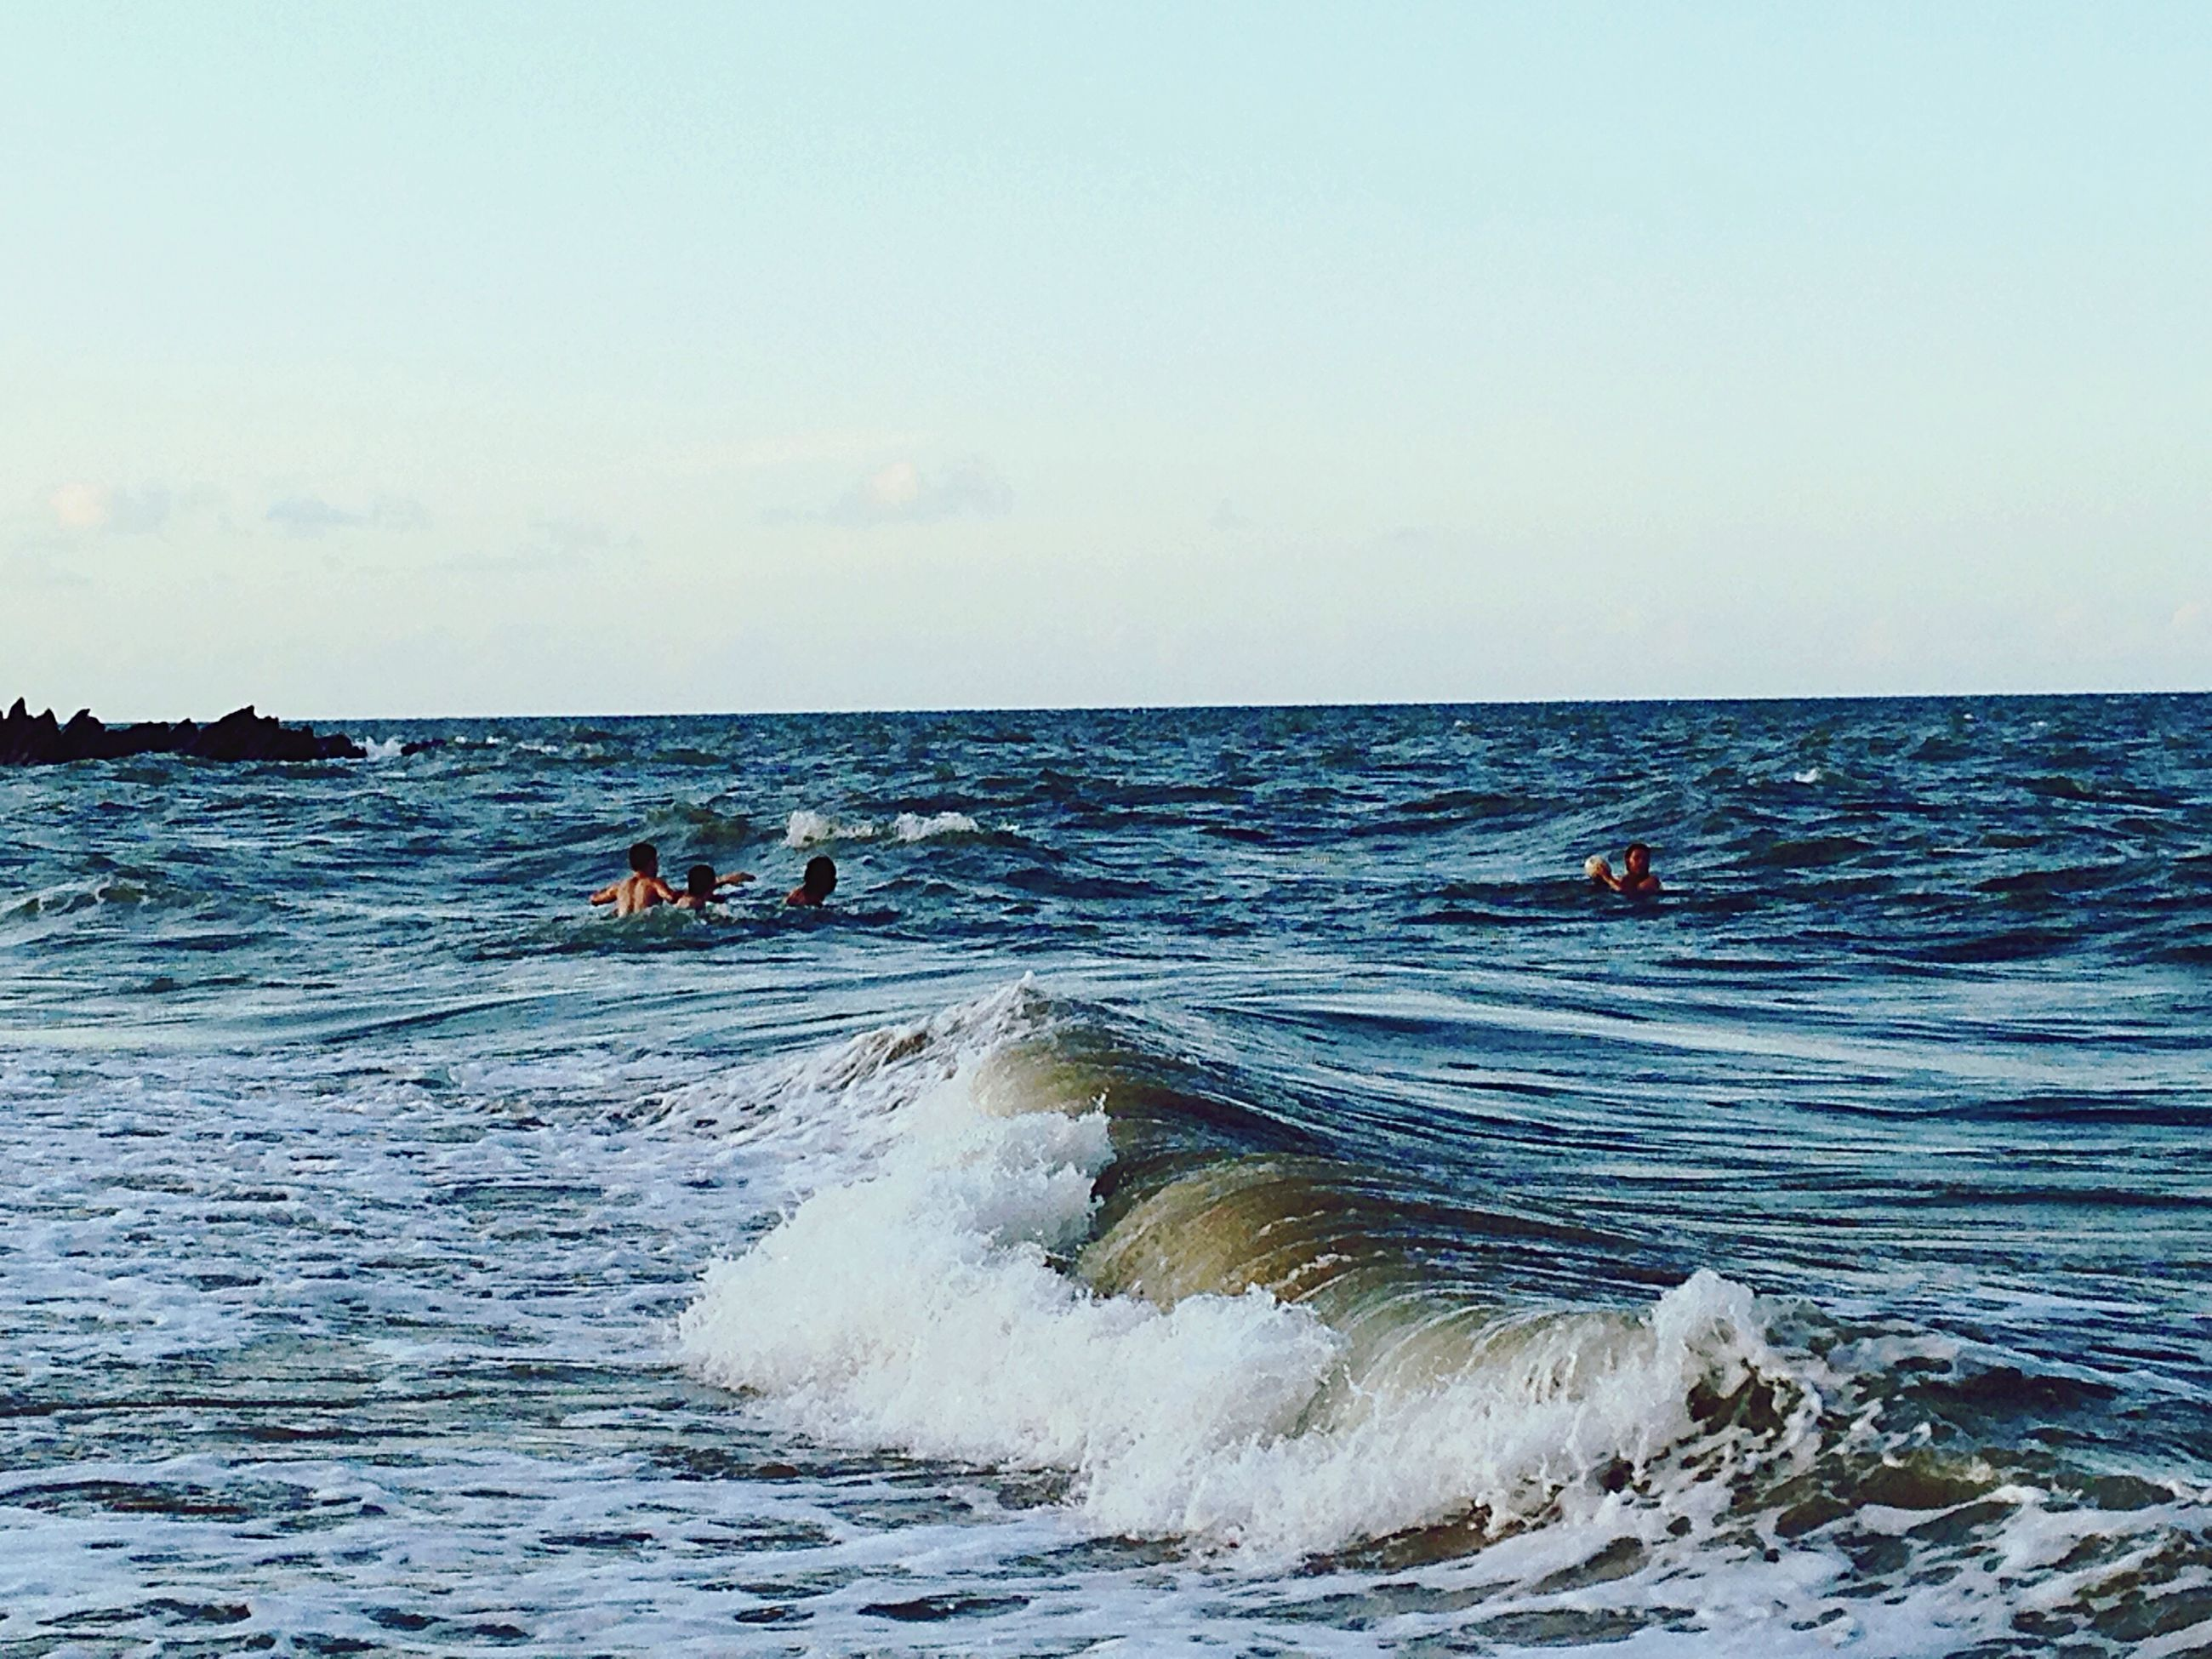 sea, water, horizon over water, vacations, wave, rippled, leisure activity, waterfront, tranquility, scenics, enjoyment, summer, tranquil scene, nature, beauty in nature, fun, seascape, tourist, blue, calm, day, sky, non-urban scene, adventure, outdoors, tourism, weekend activities